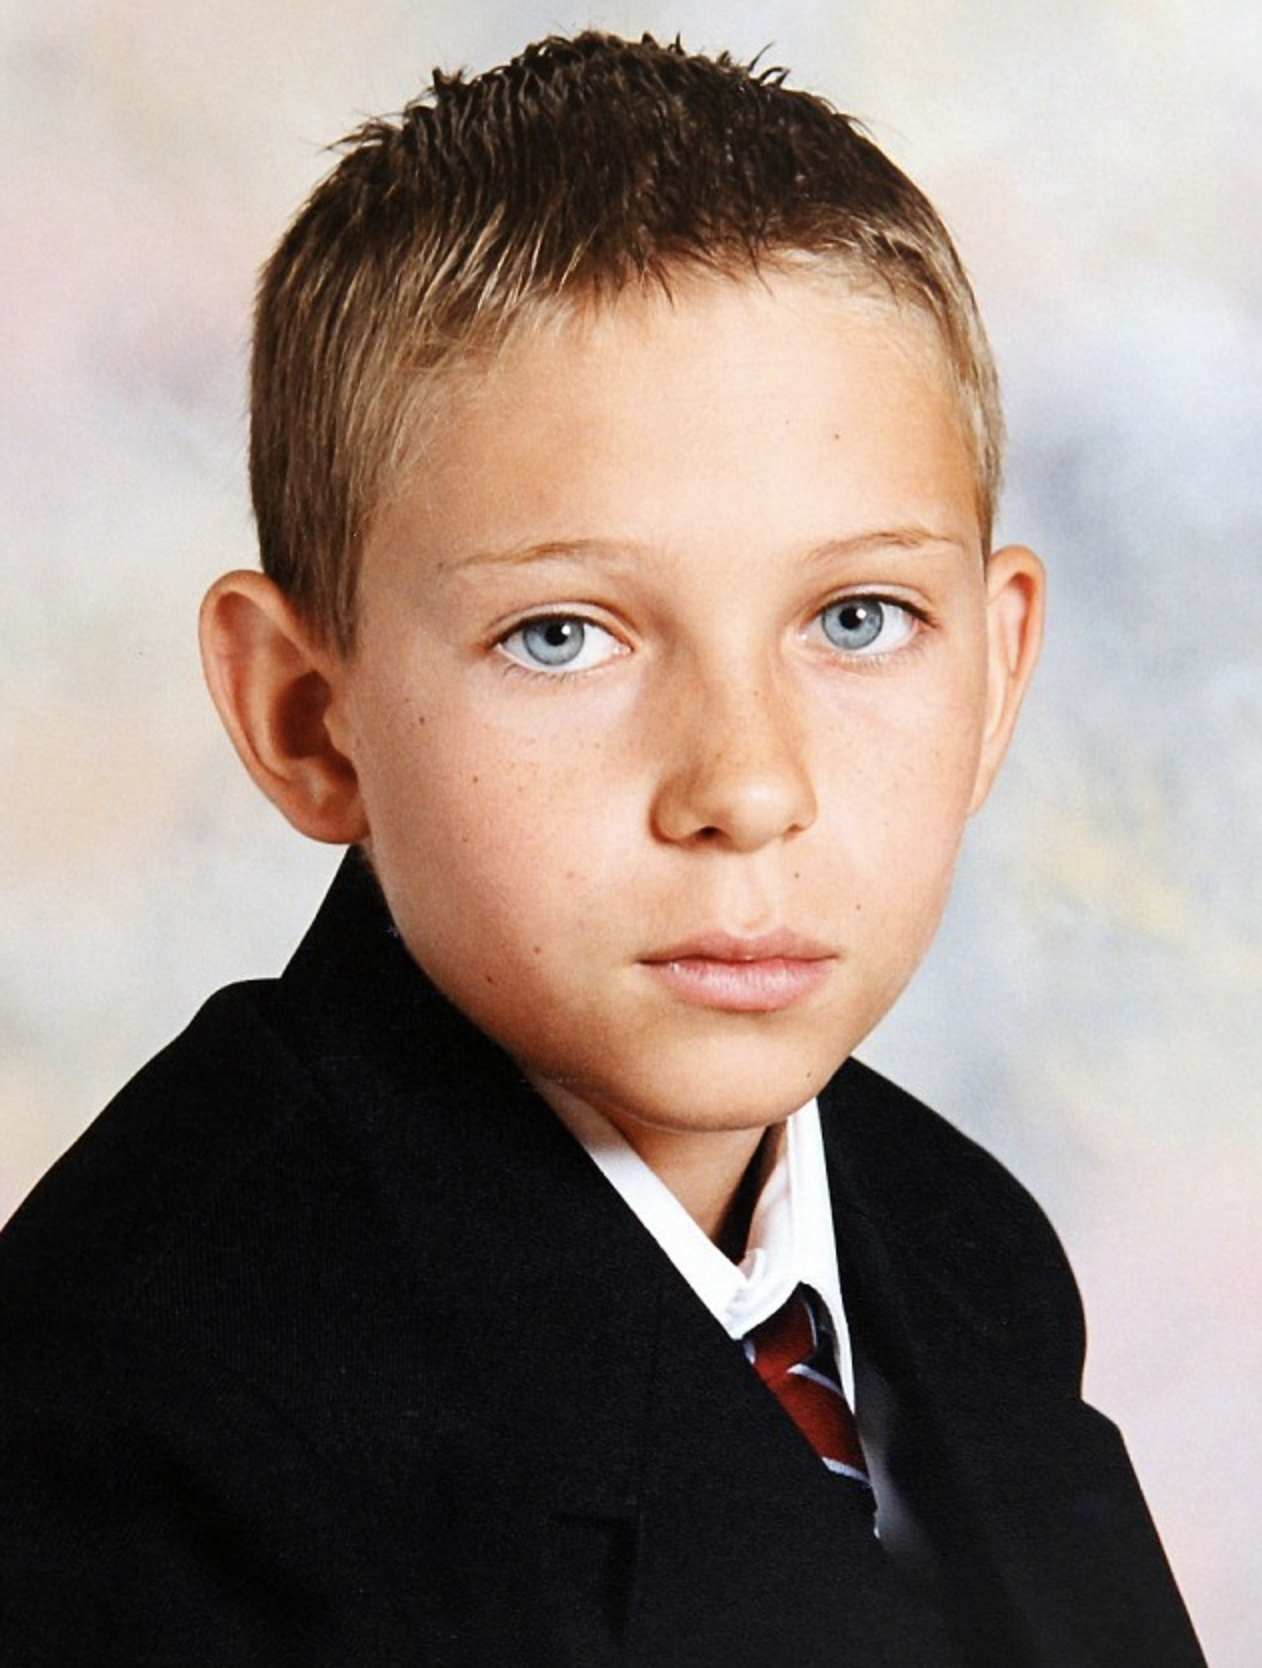 joey essex as a child